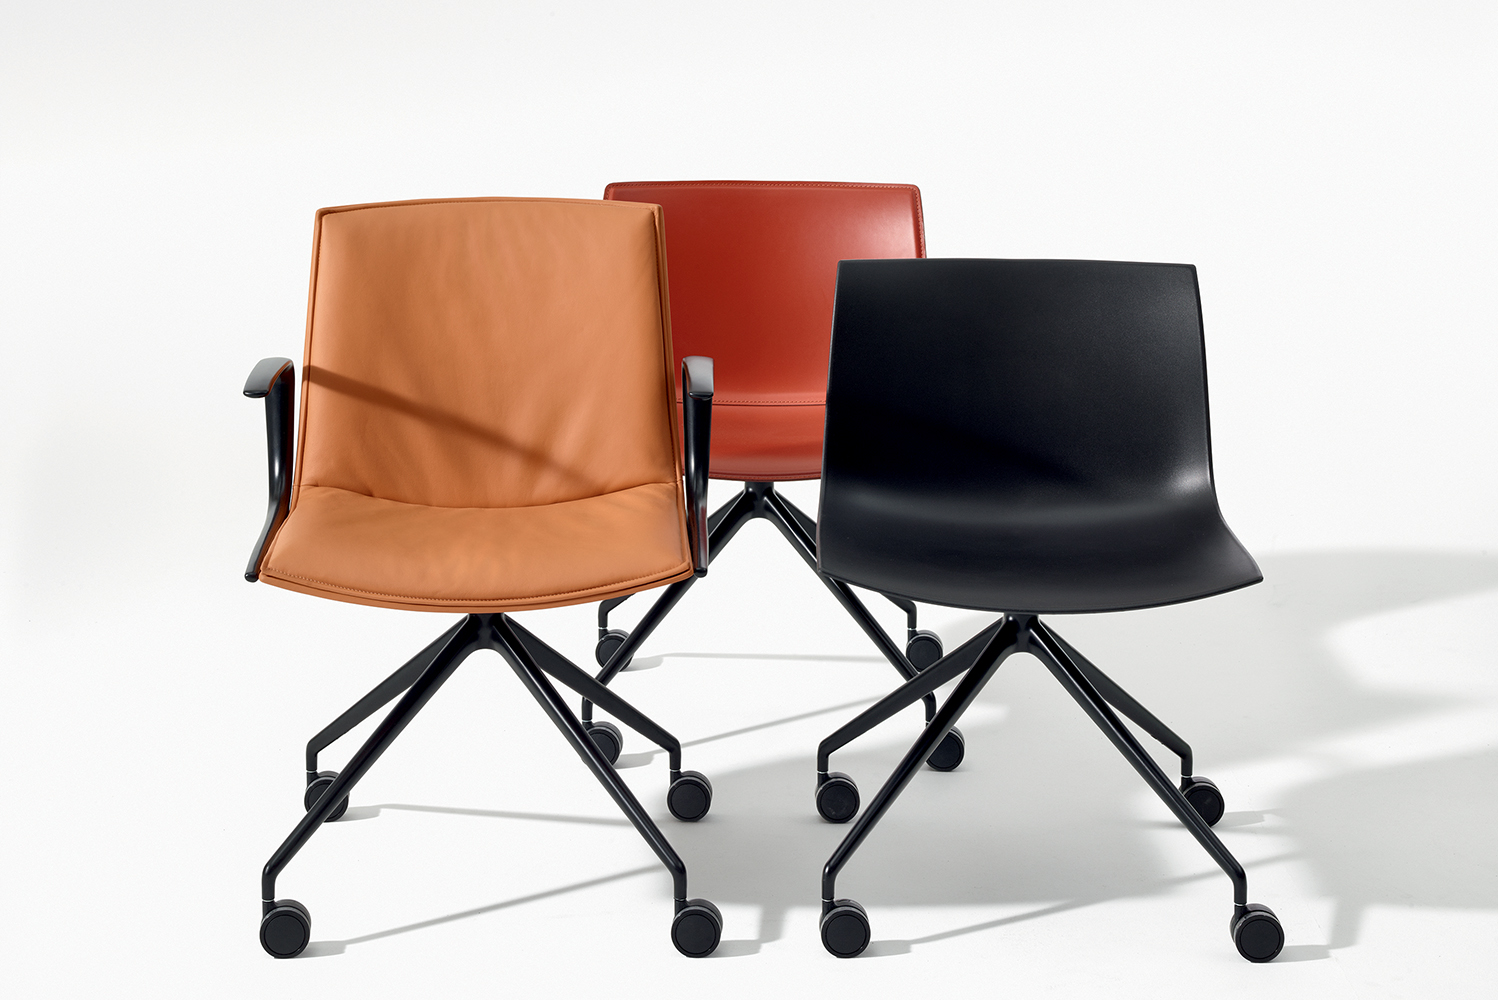 Catifa Up has a high backrest, optional armrests and plush padding to increase support and comfort.